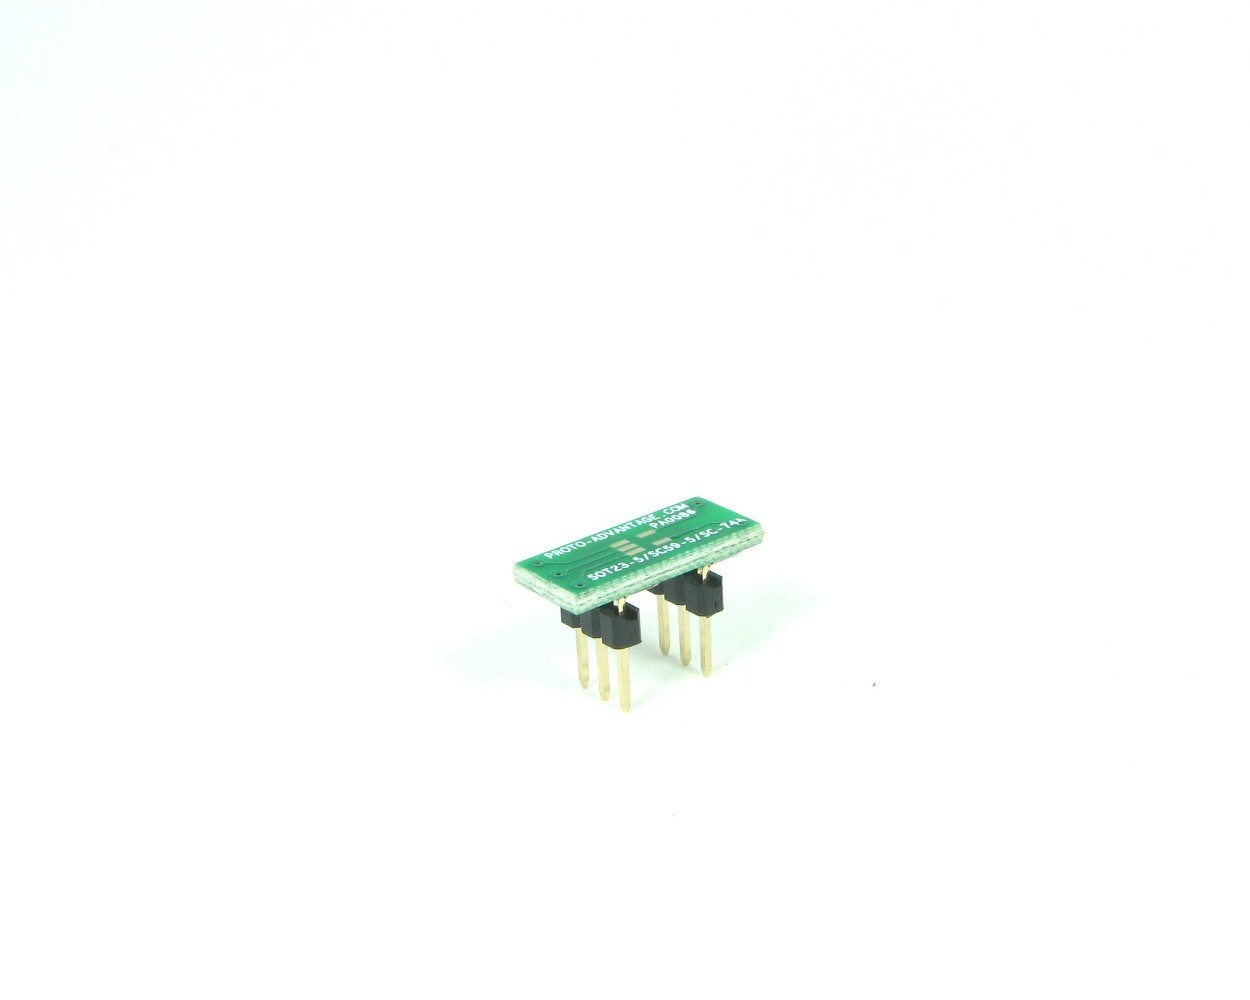 SOT23-5 to DIP-6 SMT Adapter (0.95 mm pitch)